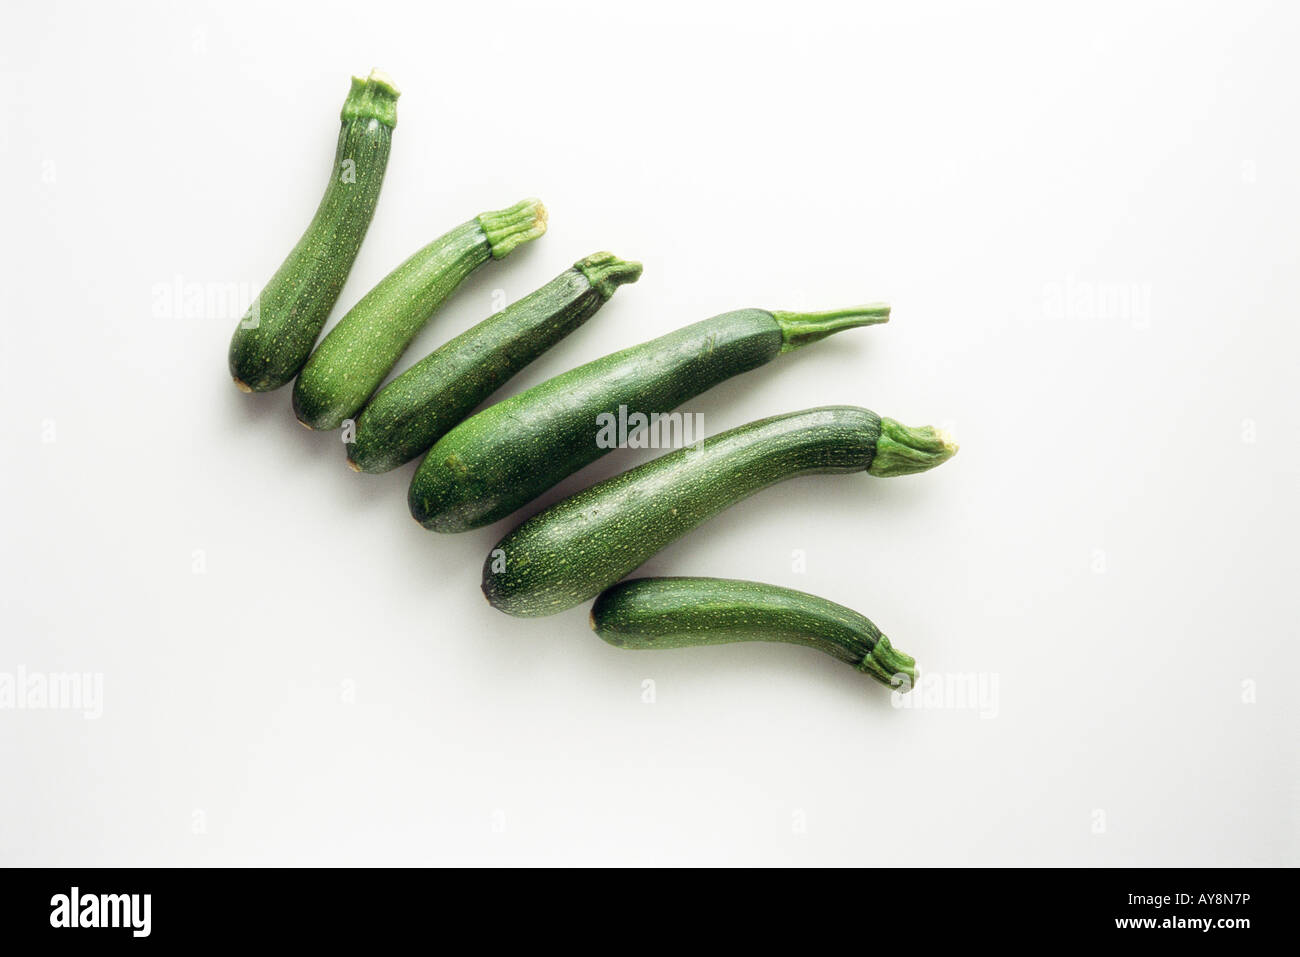 Several zucchinis, high angle view - Stock Image